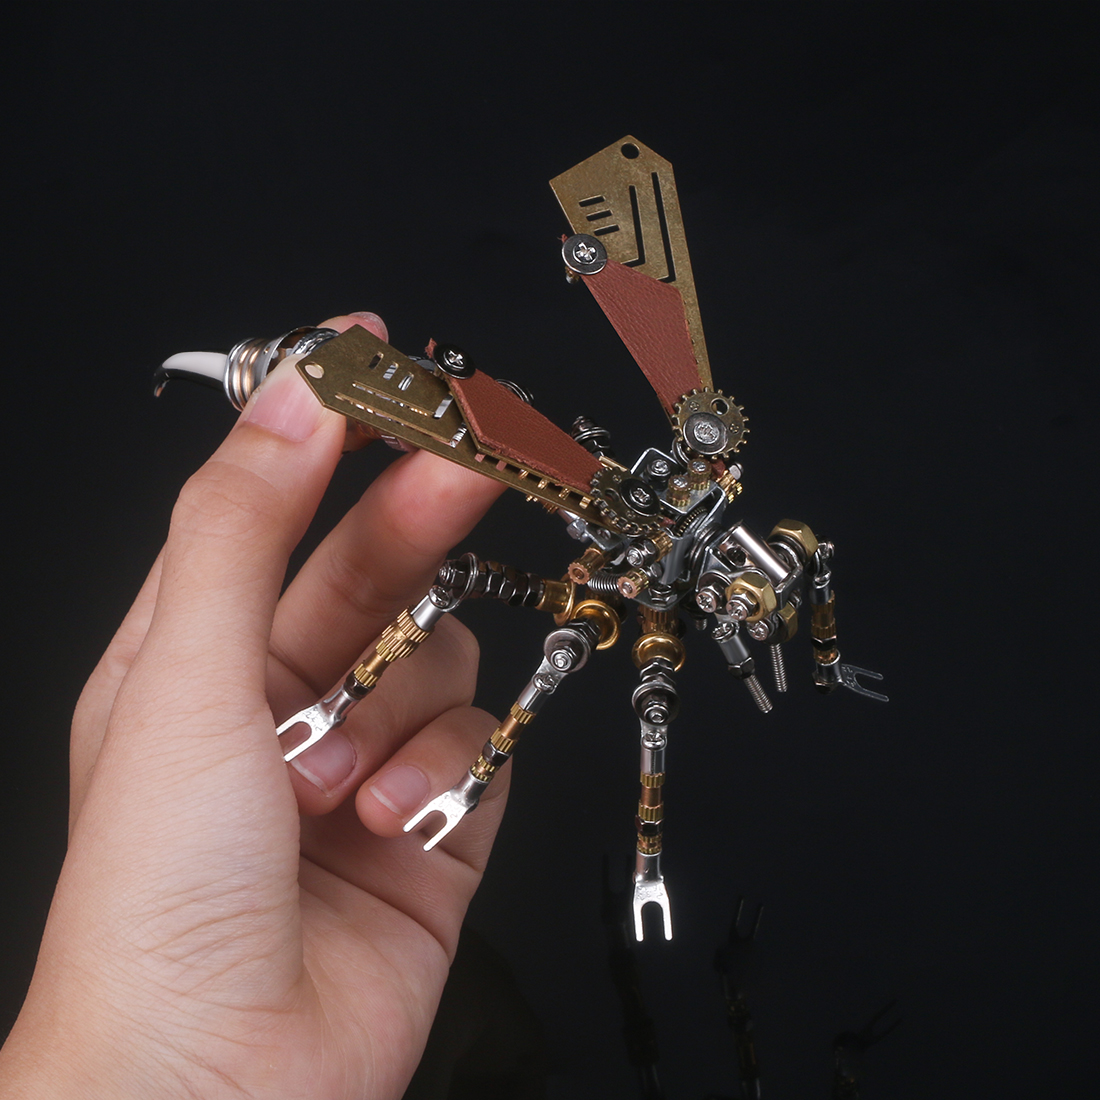 295Pcs Mechanical Wasp 3D Puzzle DIY Metal Insect Model Kit